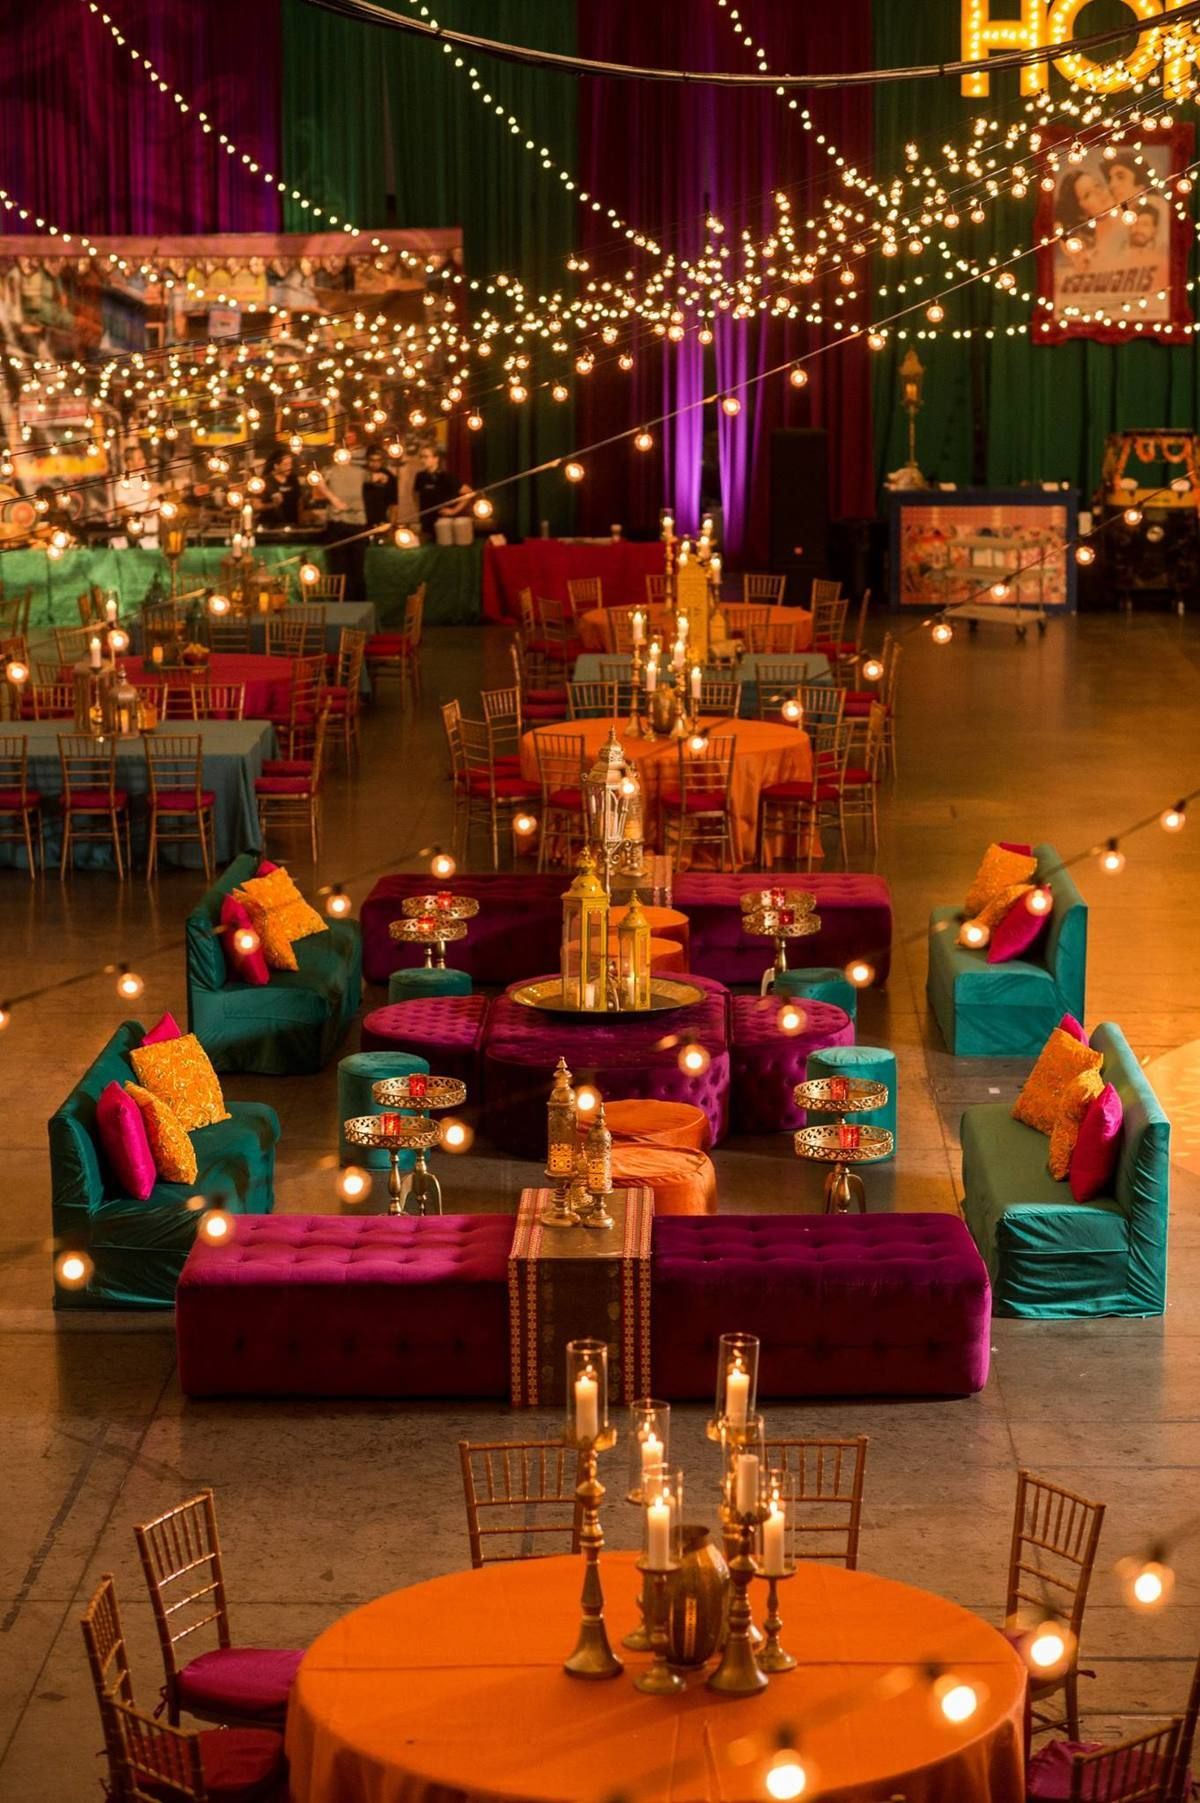 Prashe Decor is a wedding design company, specializing in